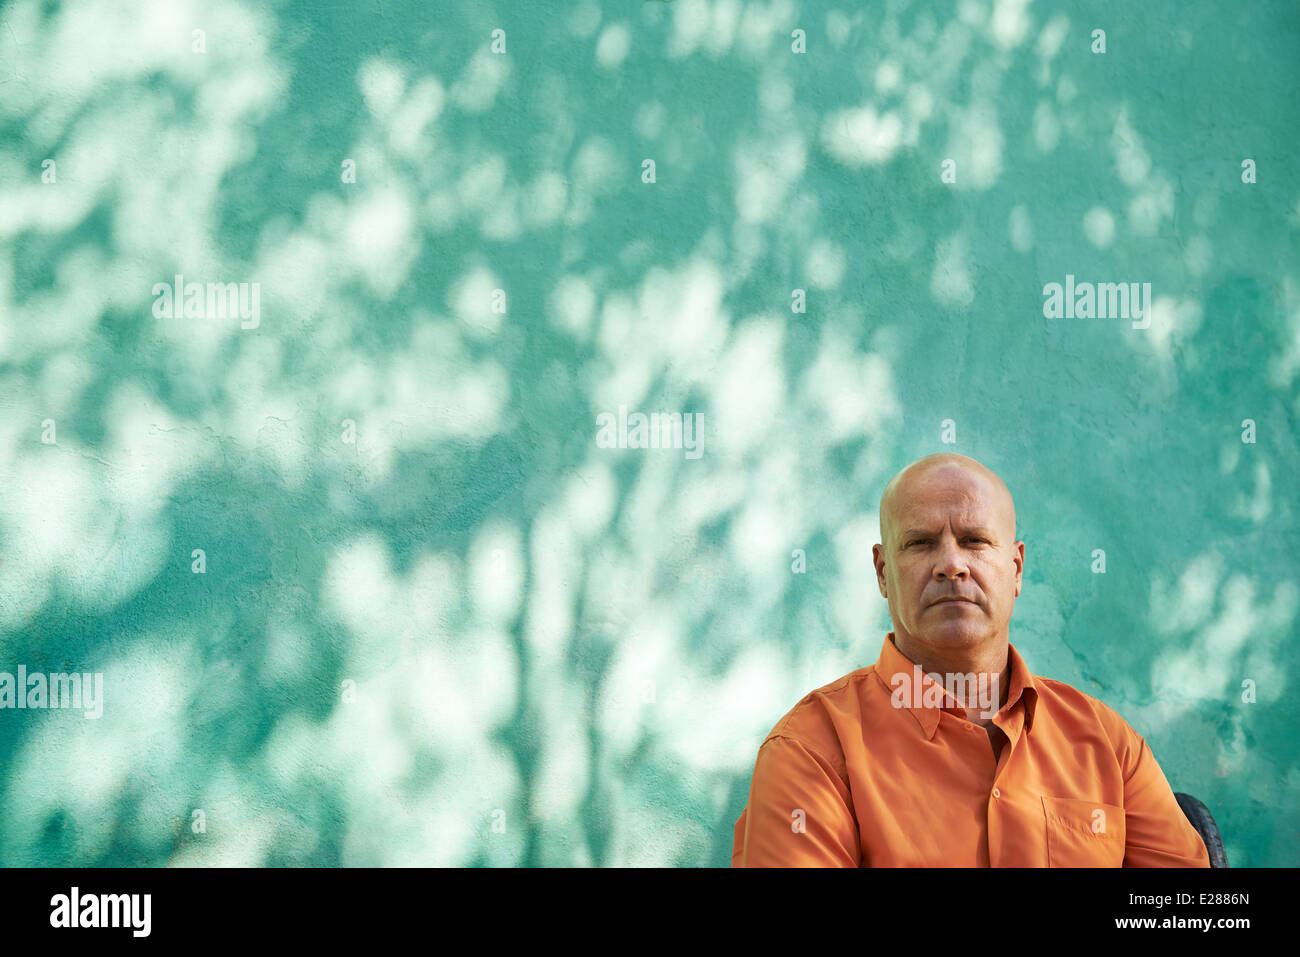 Portrait of mature caucasian man with orange shirt sitting in park and looking at camera with sad expression - Stock Image